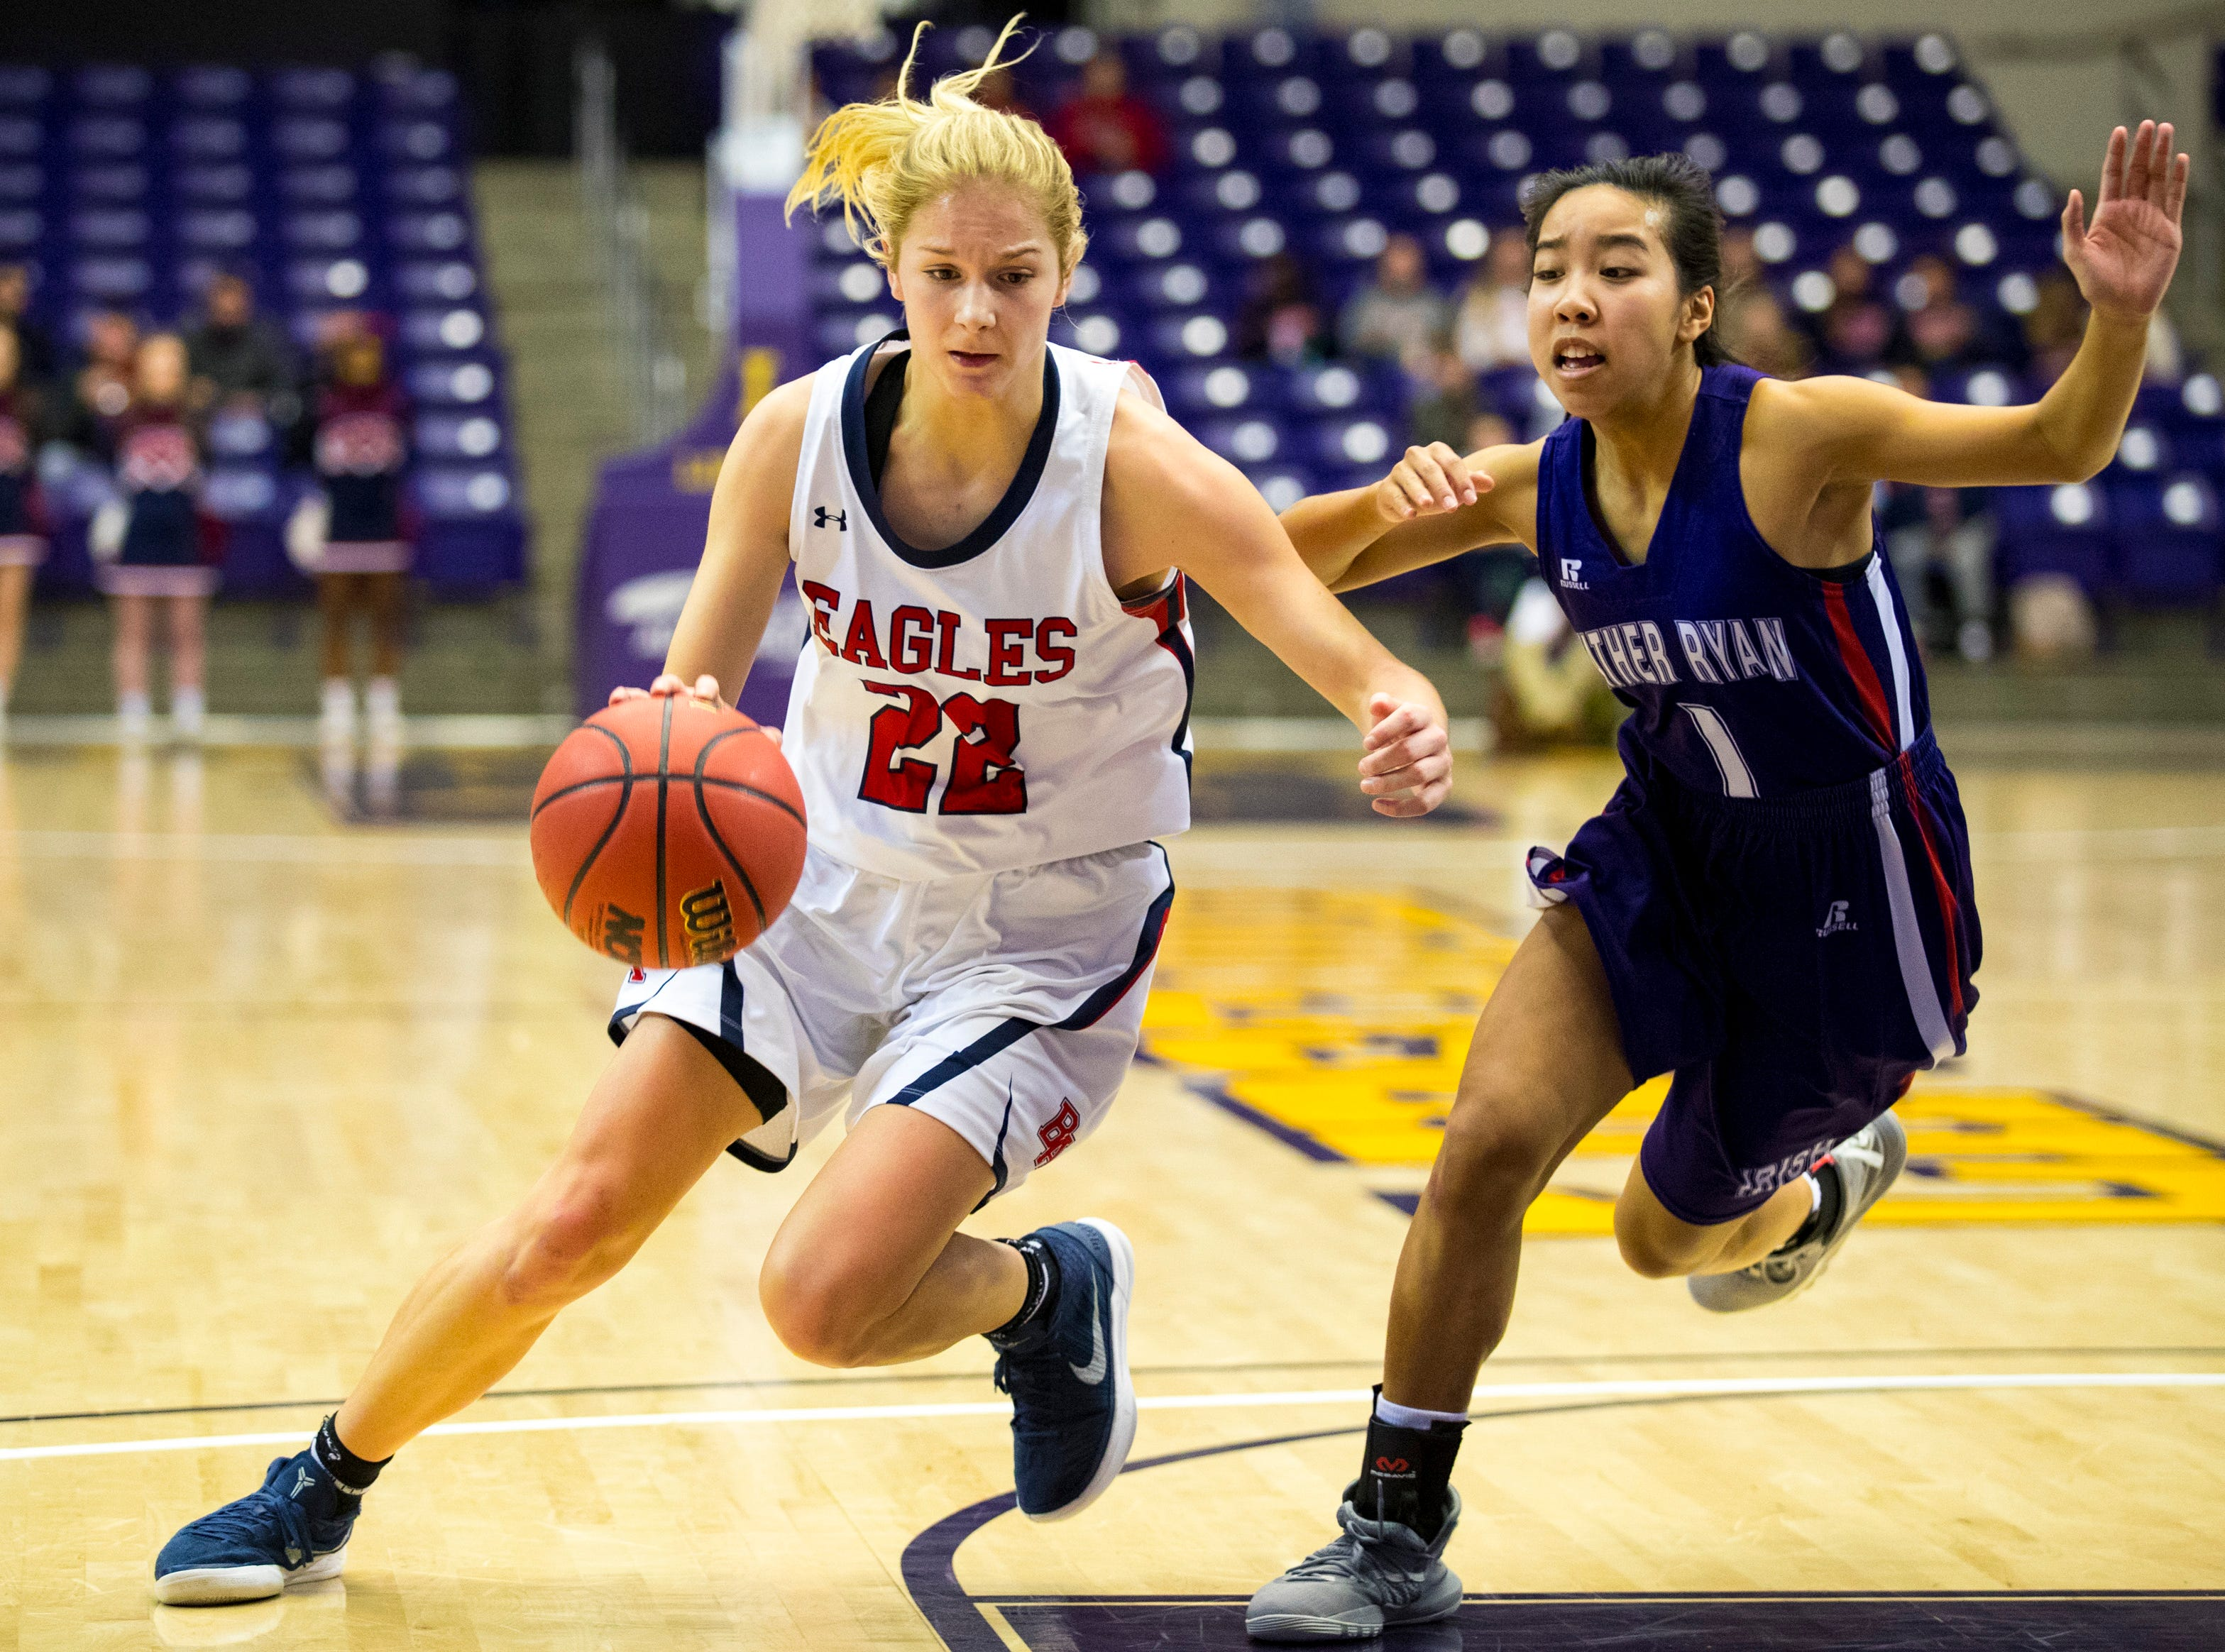 Brentwood Academy's Avery Kovick (22) drives around Father Ryan's Christine Quitalig (1) during Brentwood Academy's game against Father Ryan in the semifinal round of the TSSAA Division II Class AA State Championships at Lipscomb University's Allen Arena in Nashville on Thursday, Feb. 28, 2019.